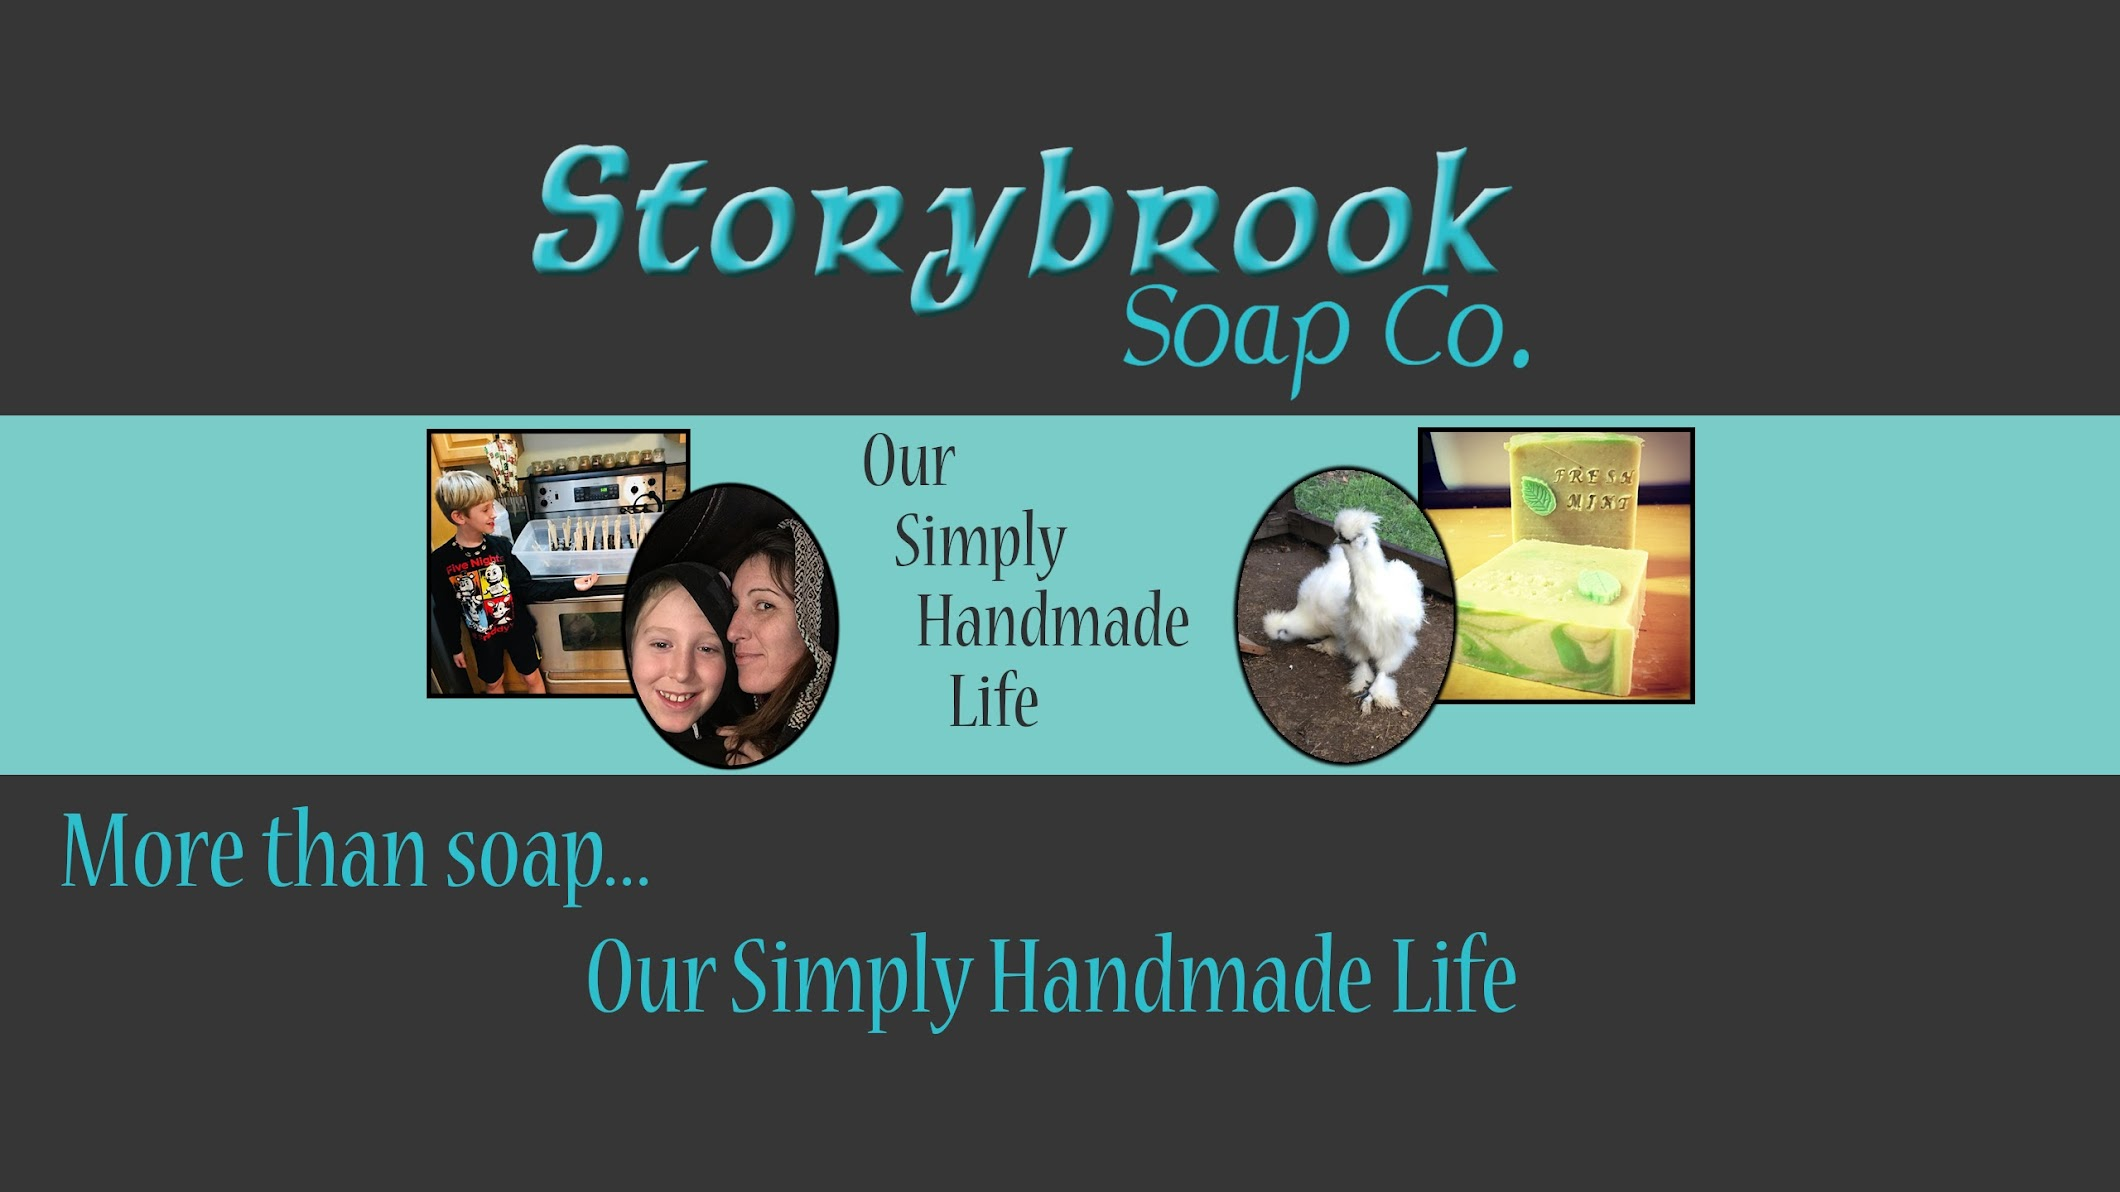 Storybrook Soap Co.